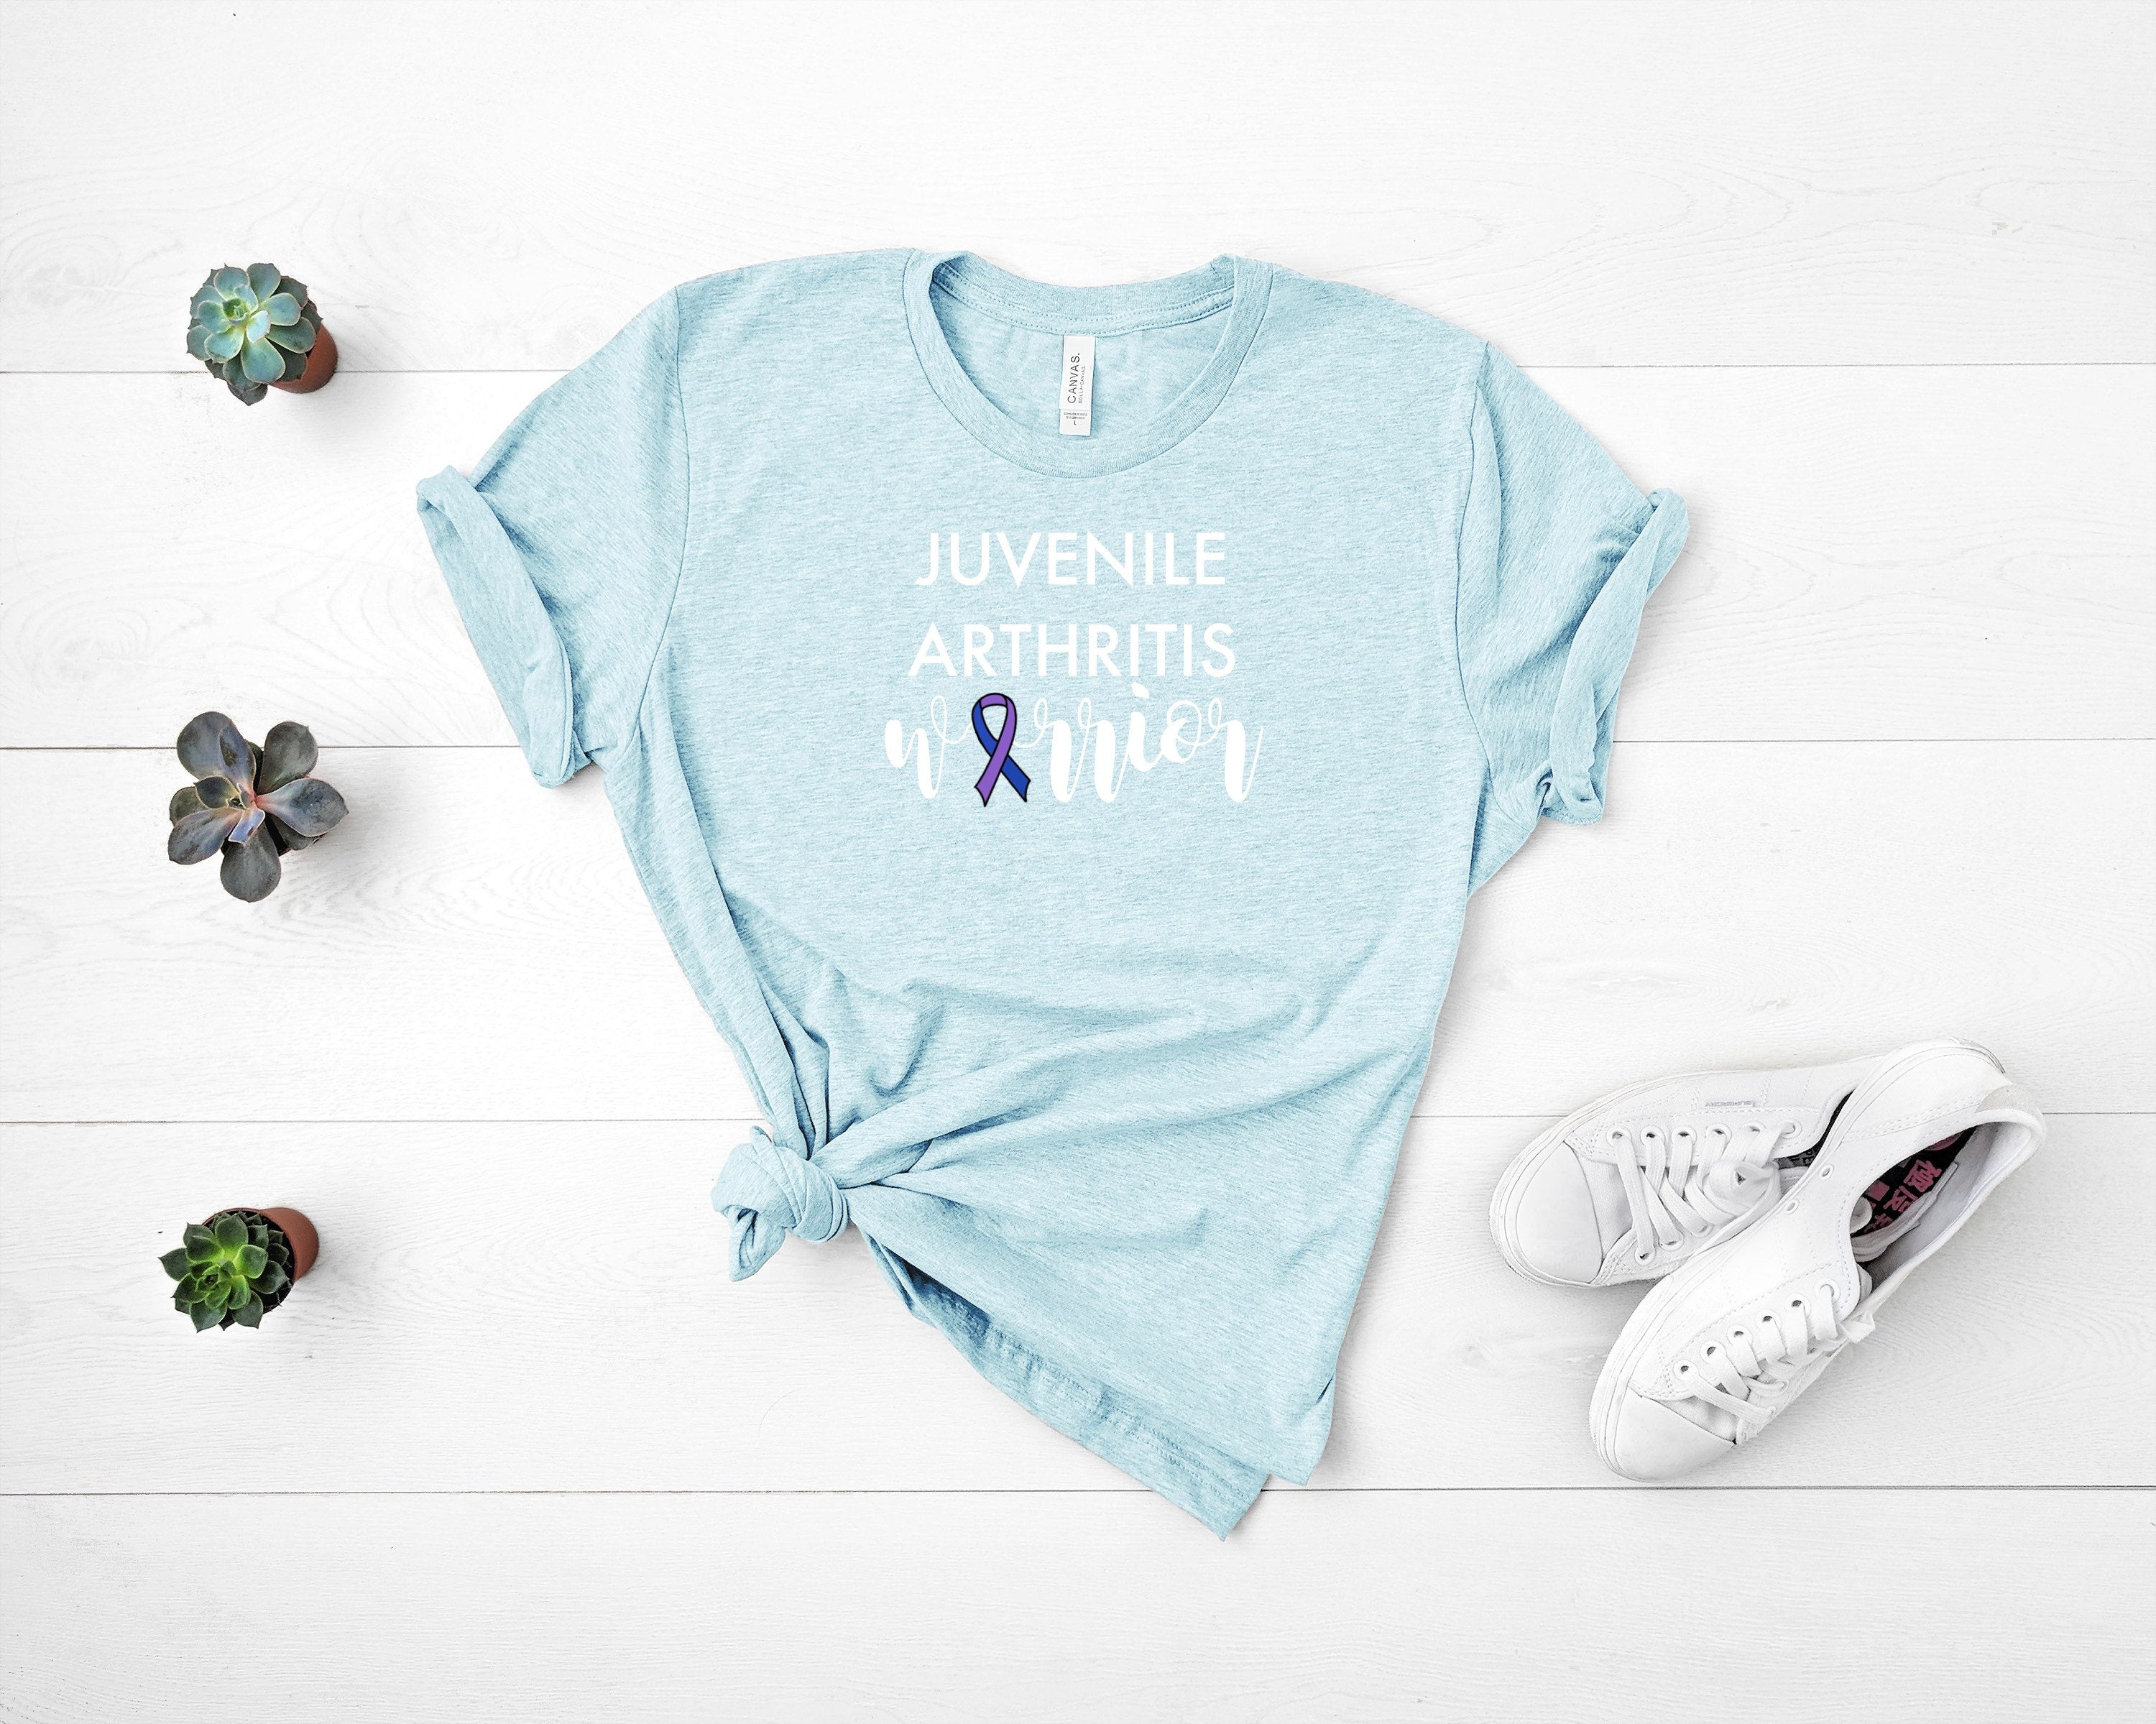 Juvenile Arthritis Warrior T-Shirt